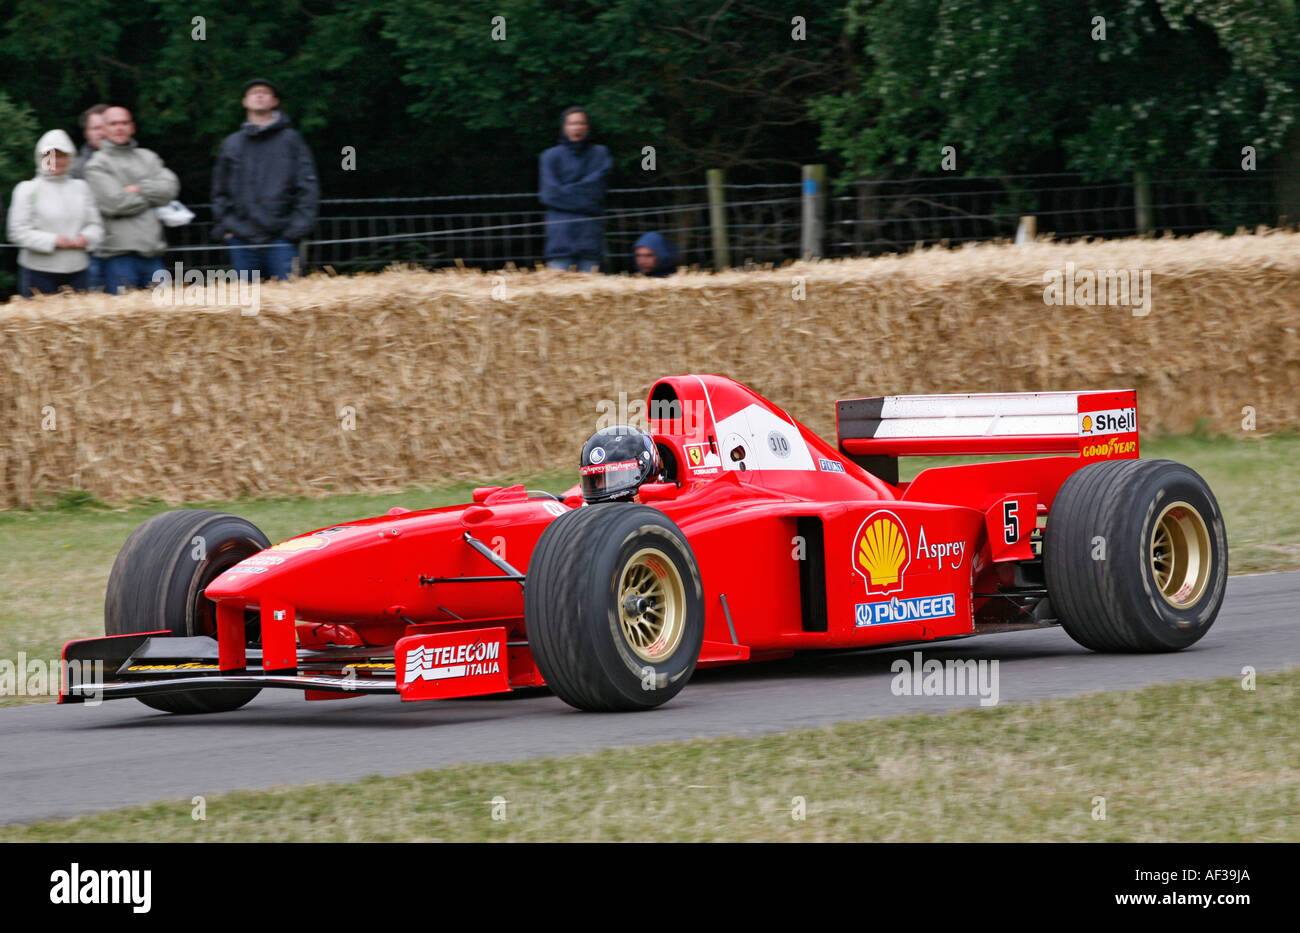 Ferrari F310b High Resolution Stock Photography And Images Alamy